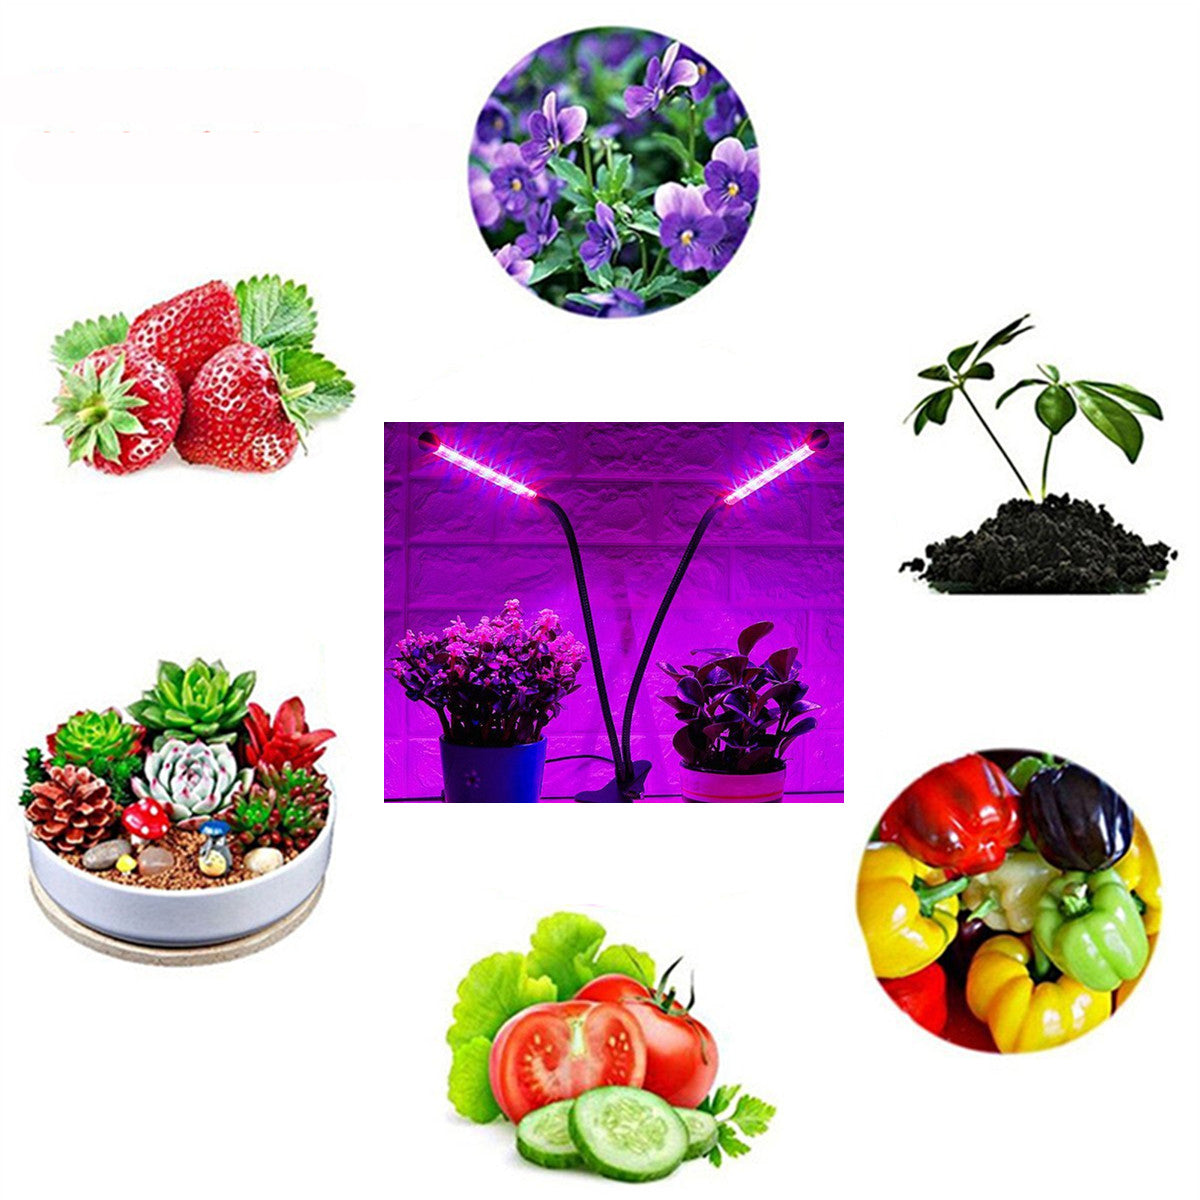 Gardening Plant 18W Dual-lamp LED Grow Light Dimmablec Adjustable Flexible 360 Degree Gooseneck Growing Lamp